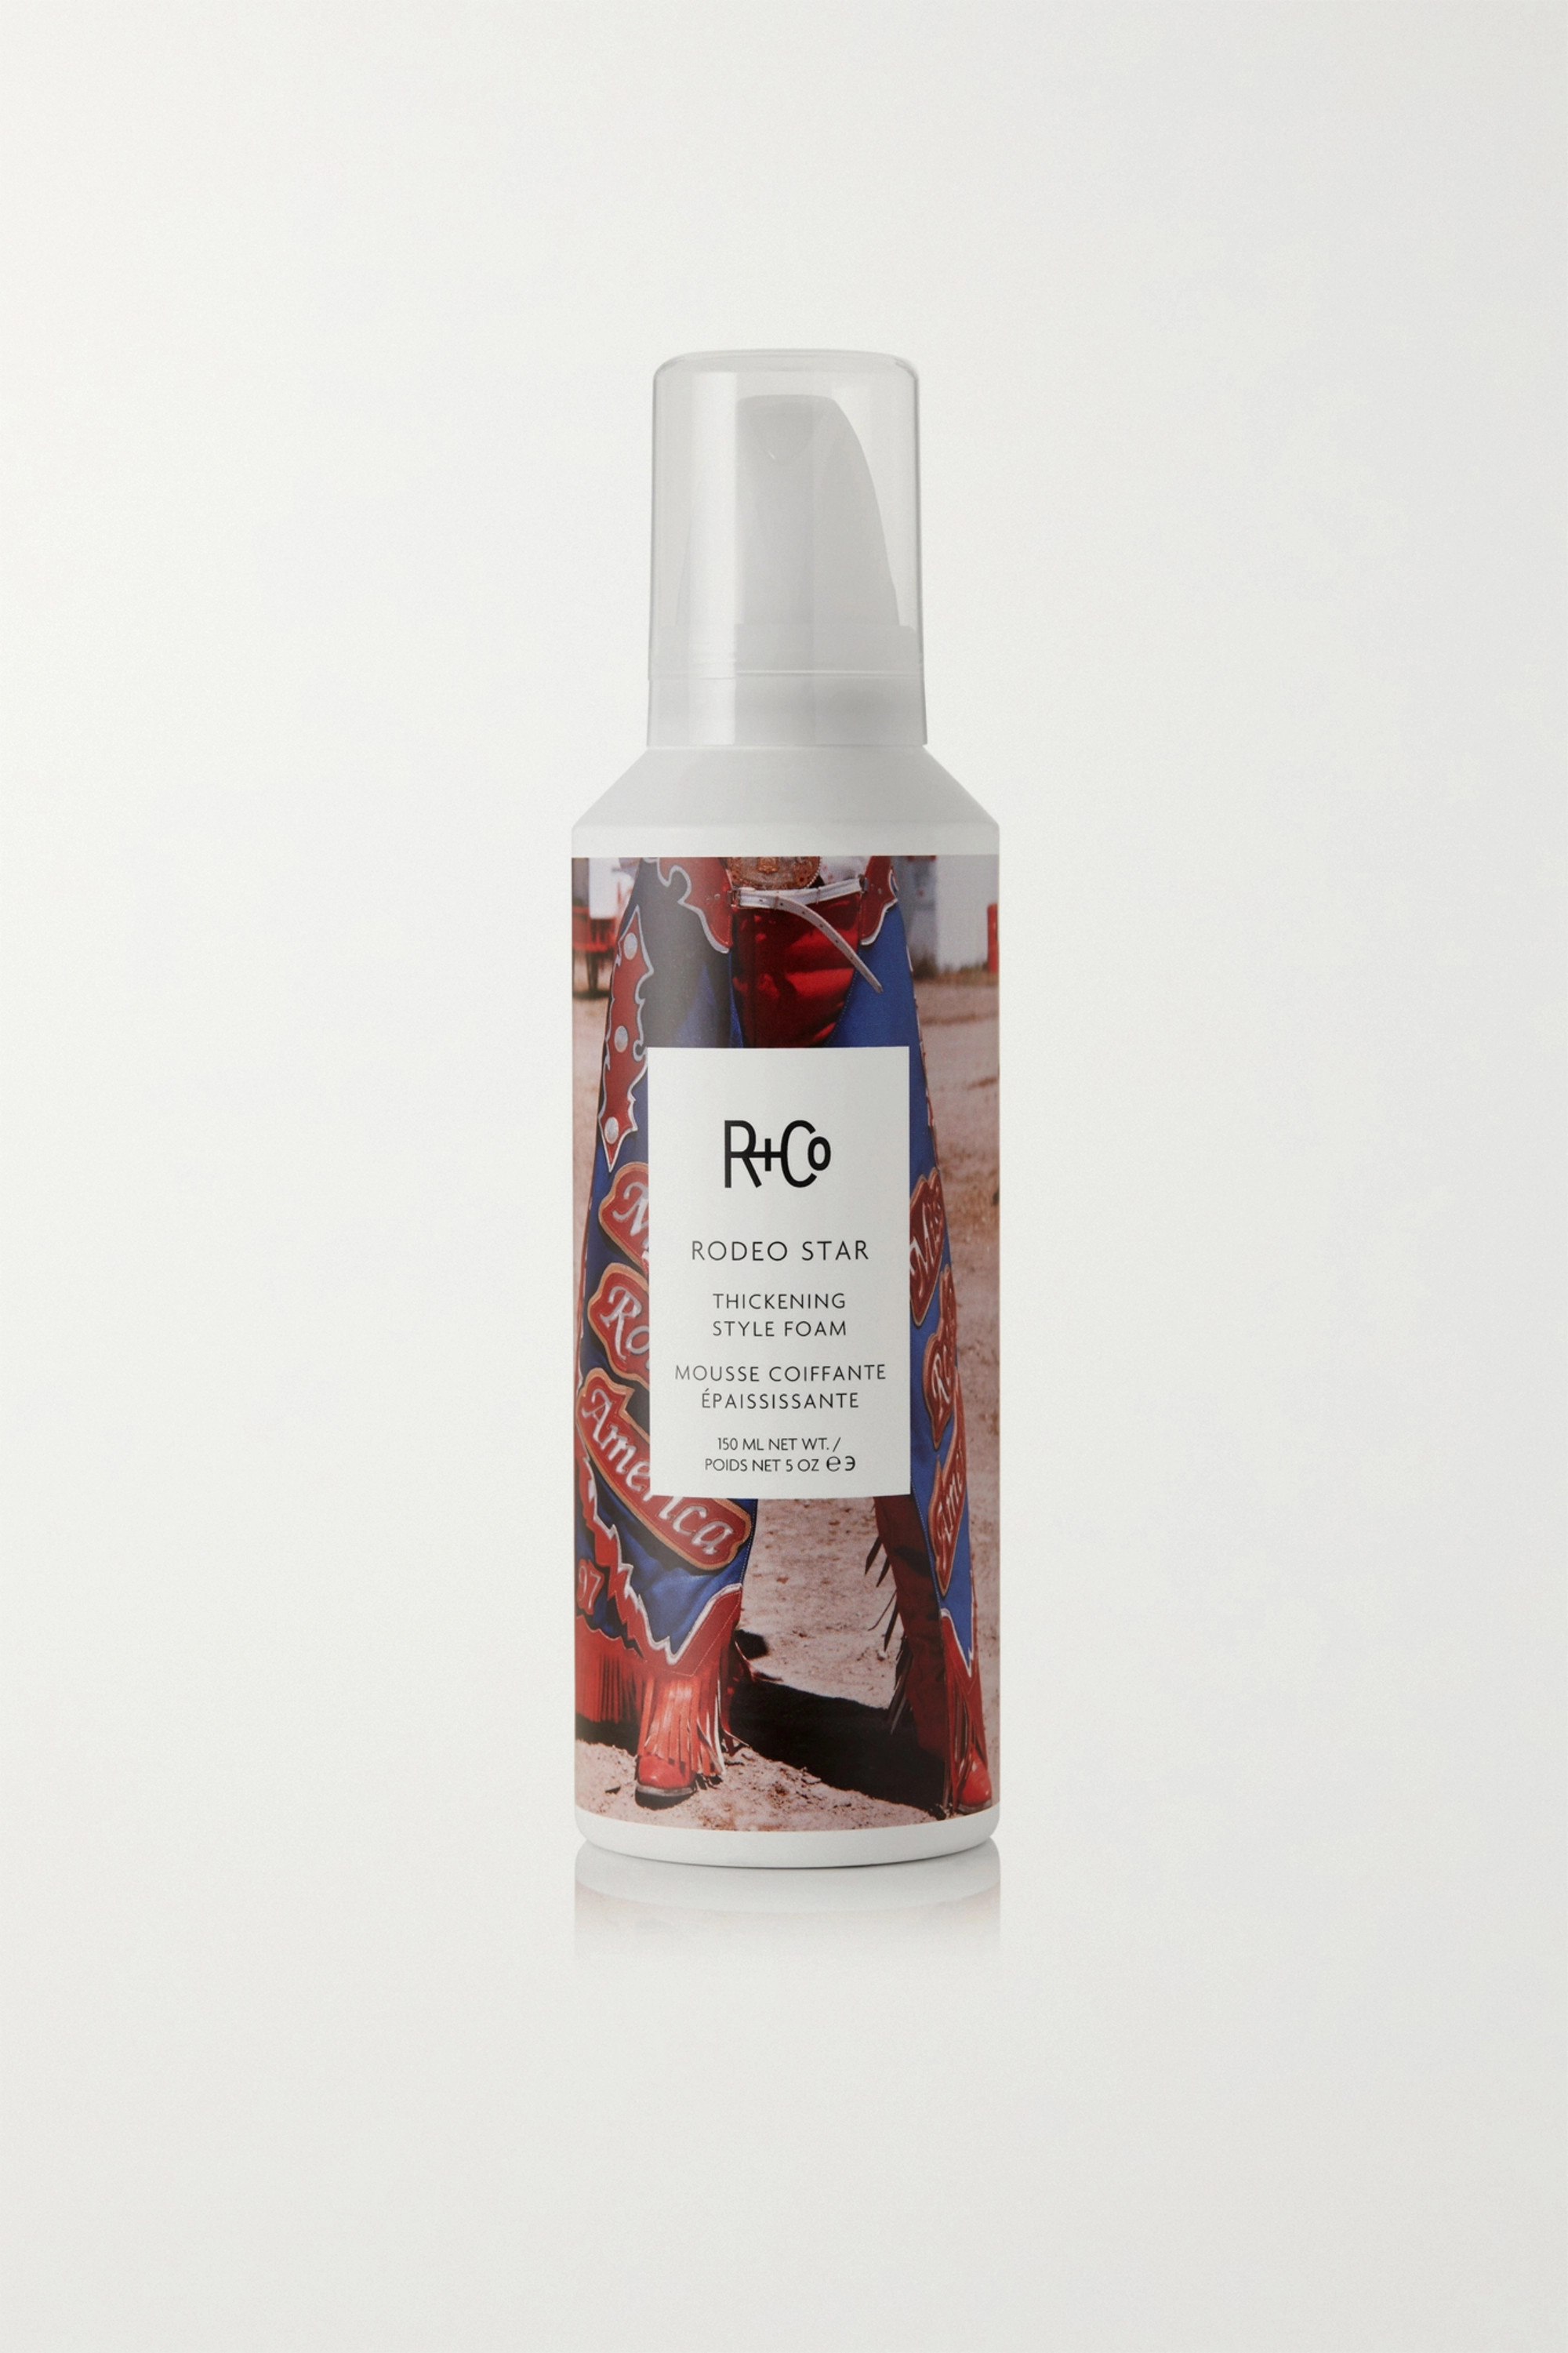 R+Co Rodeo Star Thickening Style Foam, 150ml